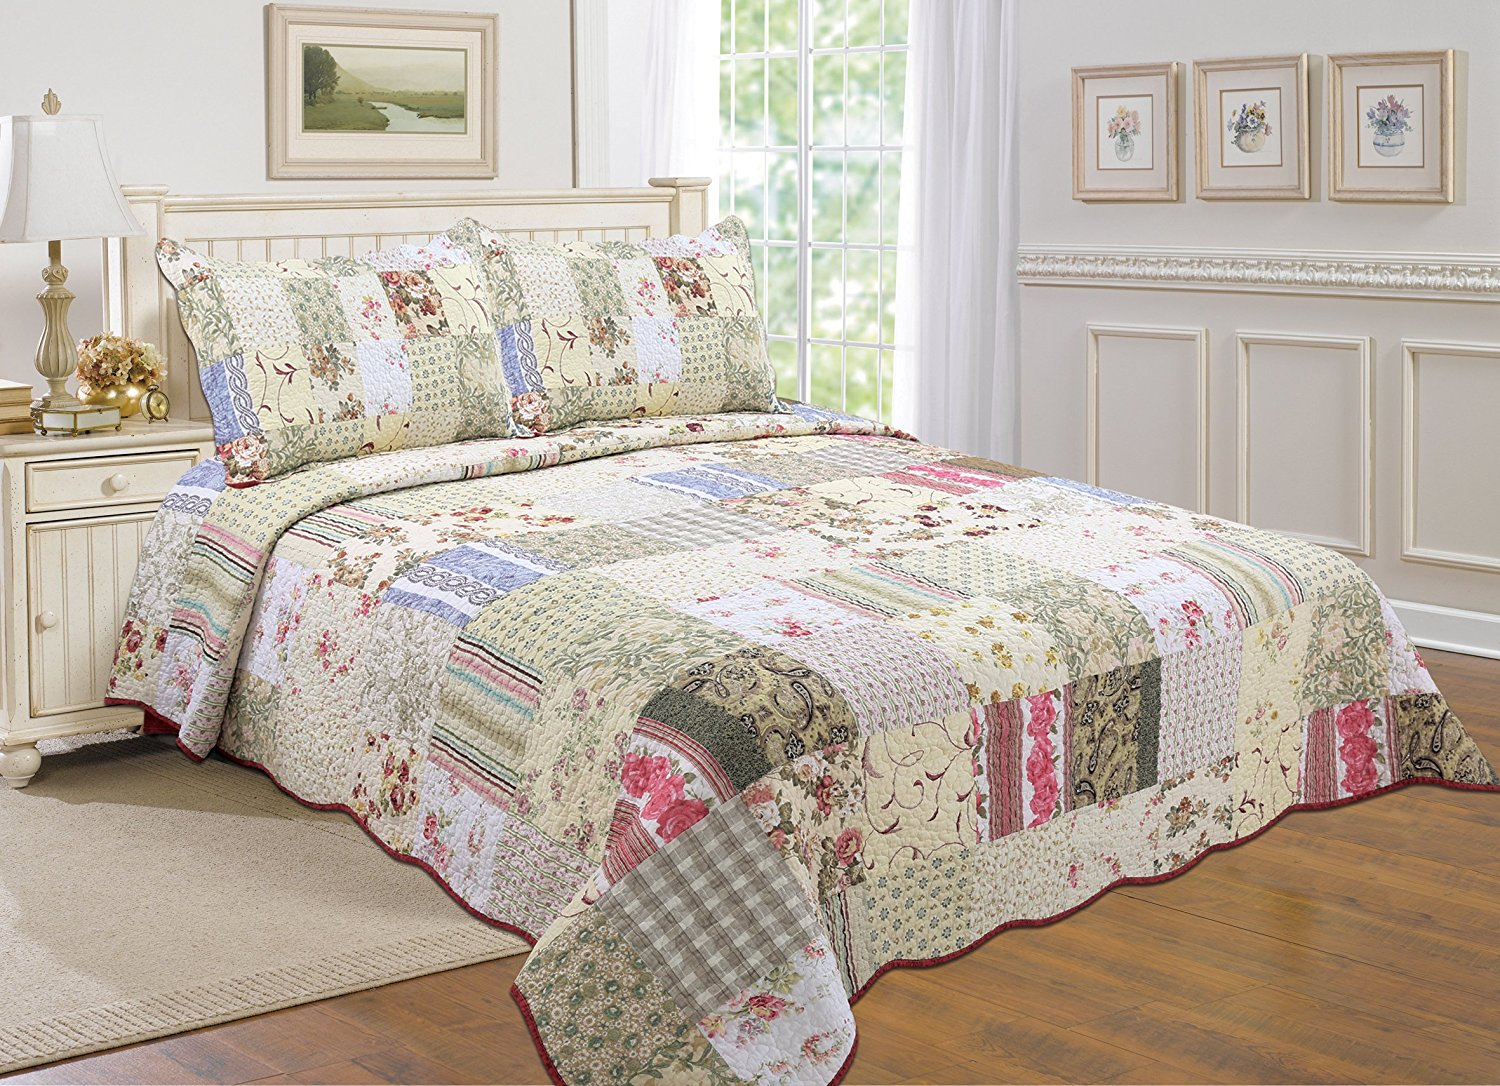 Quilt Sets All For You 100 Cotton 3 Piece Reversible Bedspread Coverlet Quilt Set Oversize Real Patchwork Full Queen 100